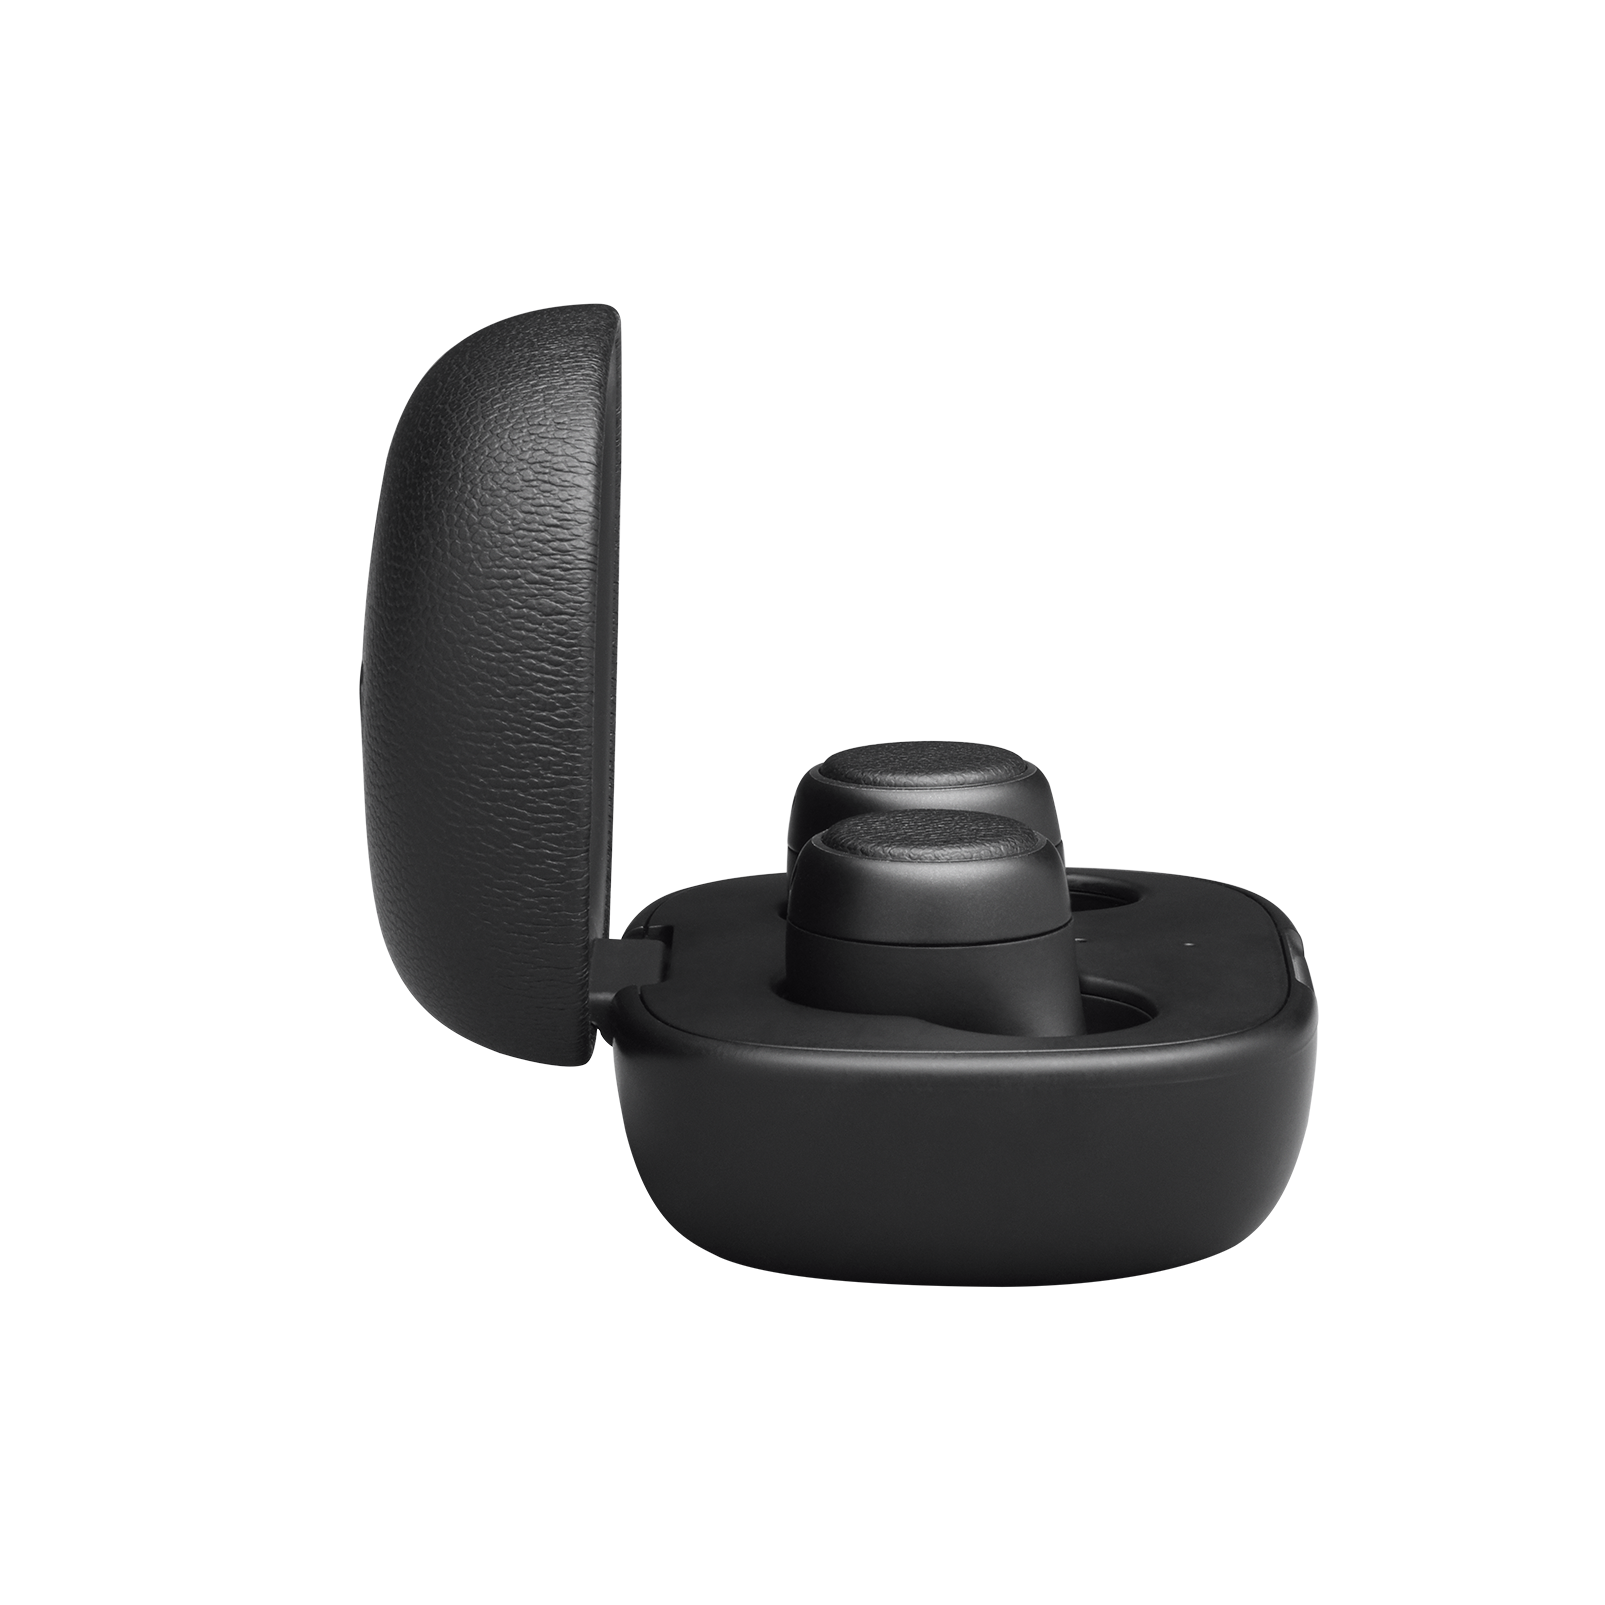 Harman Kardon FLY TWS - Black - True Wireless in-ear headphones - Detailshot 6